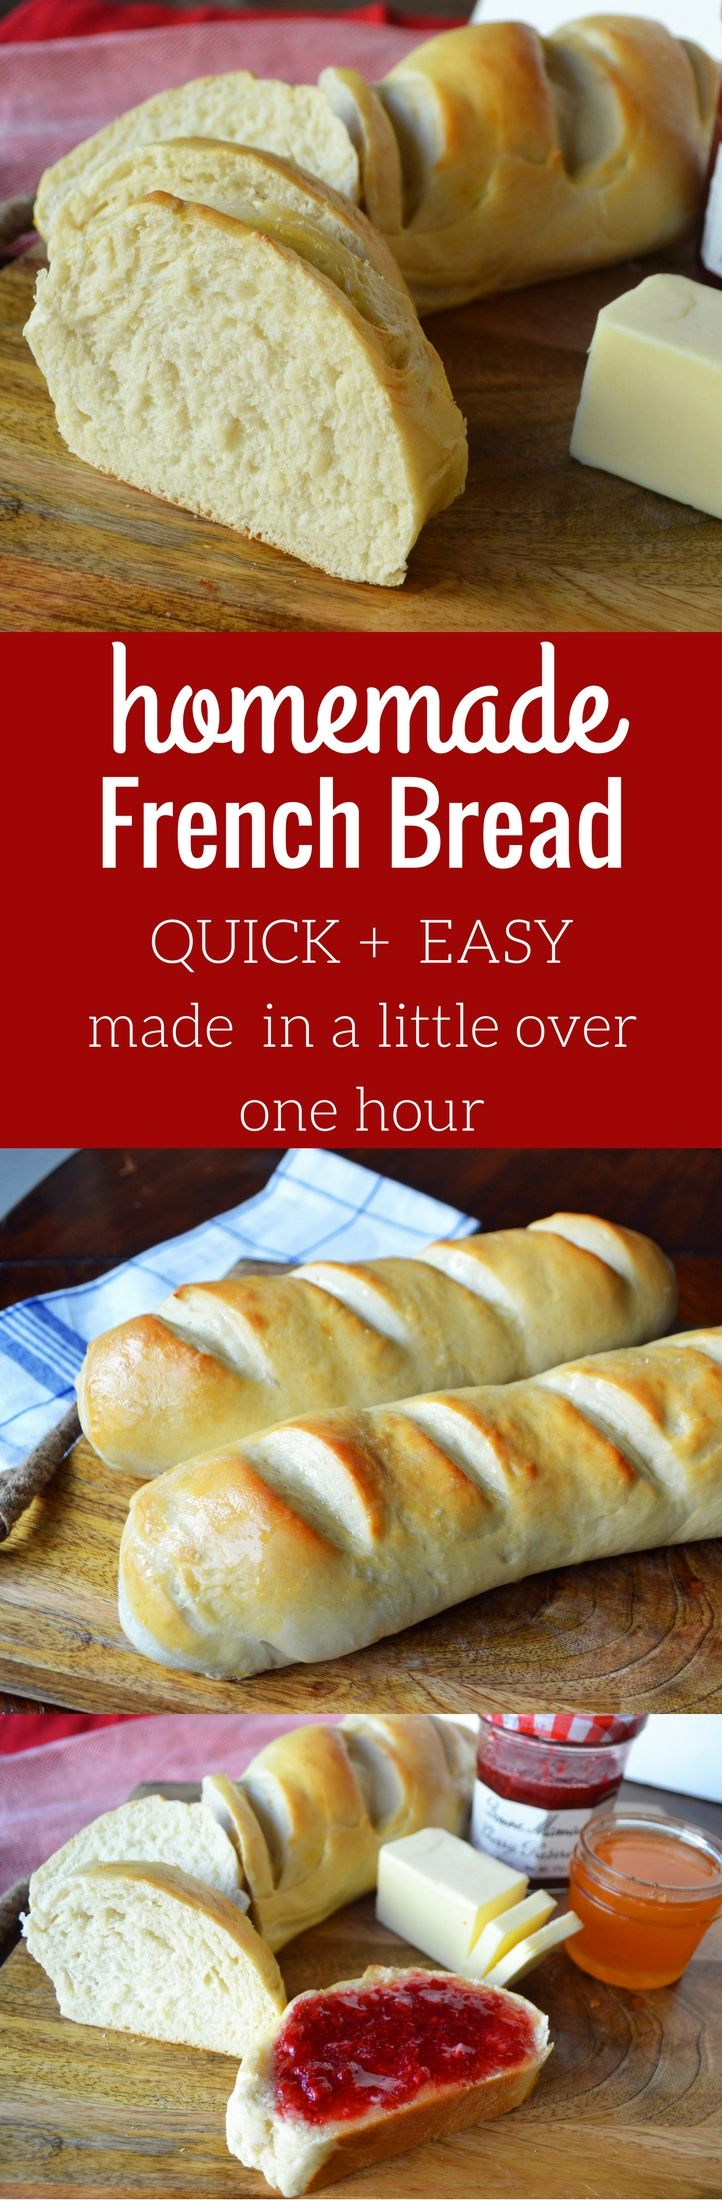 Homemade Bakery French Bread made in a little over an hour. QUICK and EASY soft bread. www.modernhoney.com